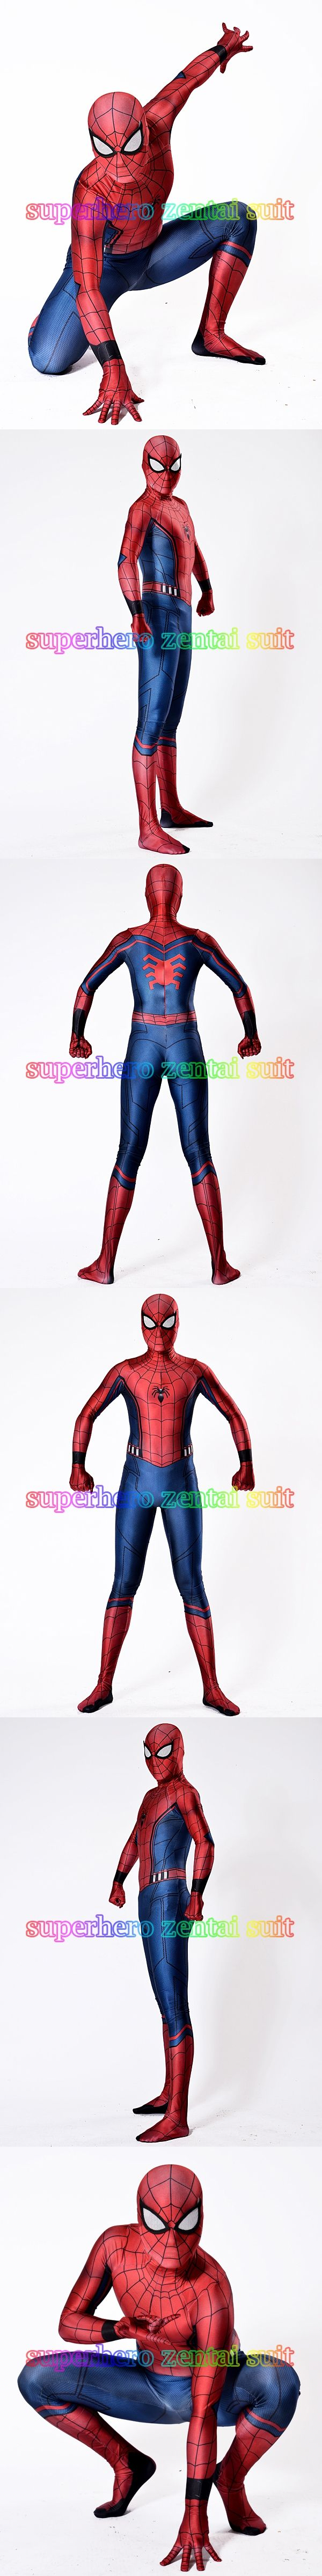 Civil War Spiderman Costume 3D Shade Spandex Fullbody Halloween Cosplay Spider-man Superhero Costume For Adult/Kids